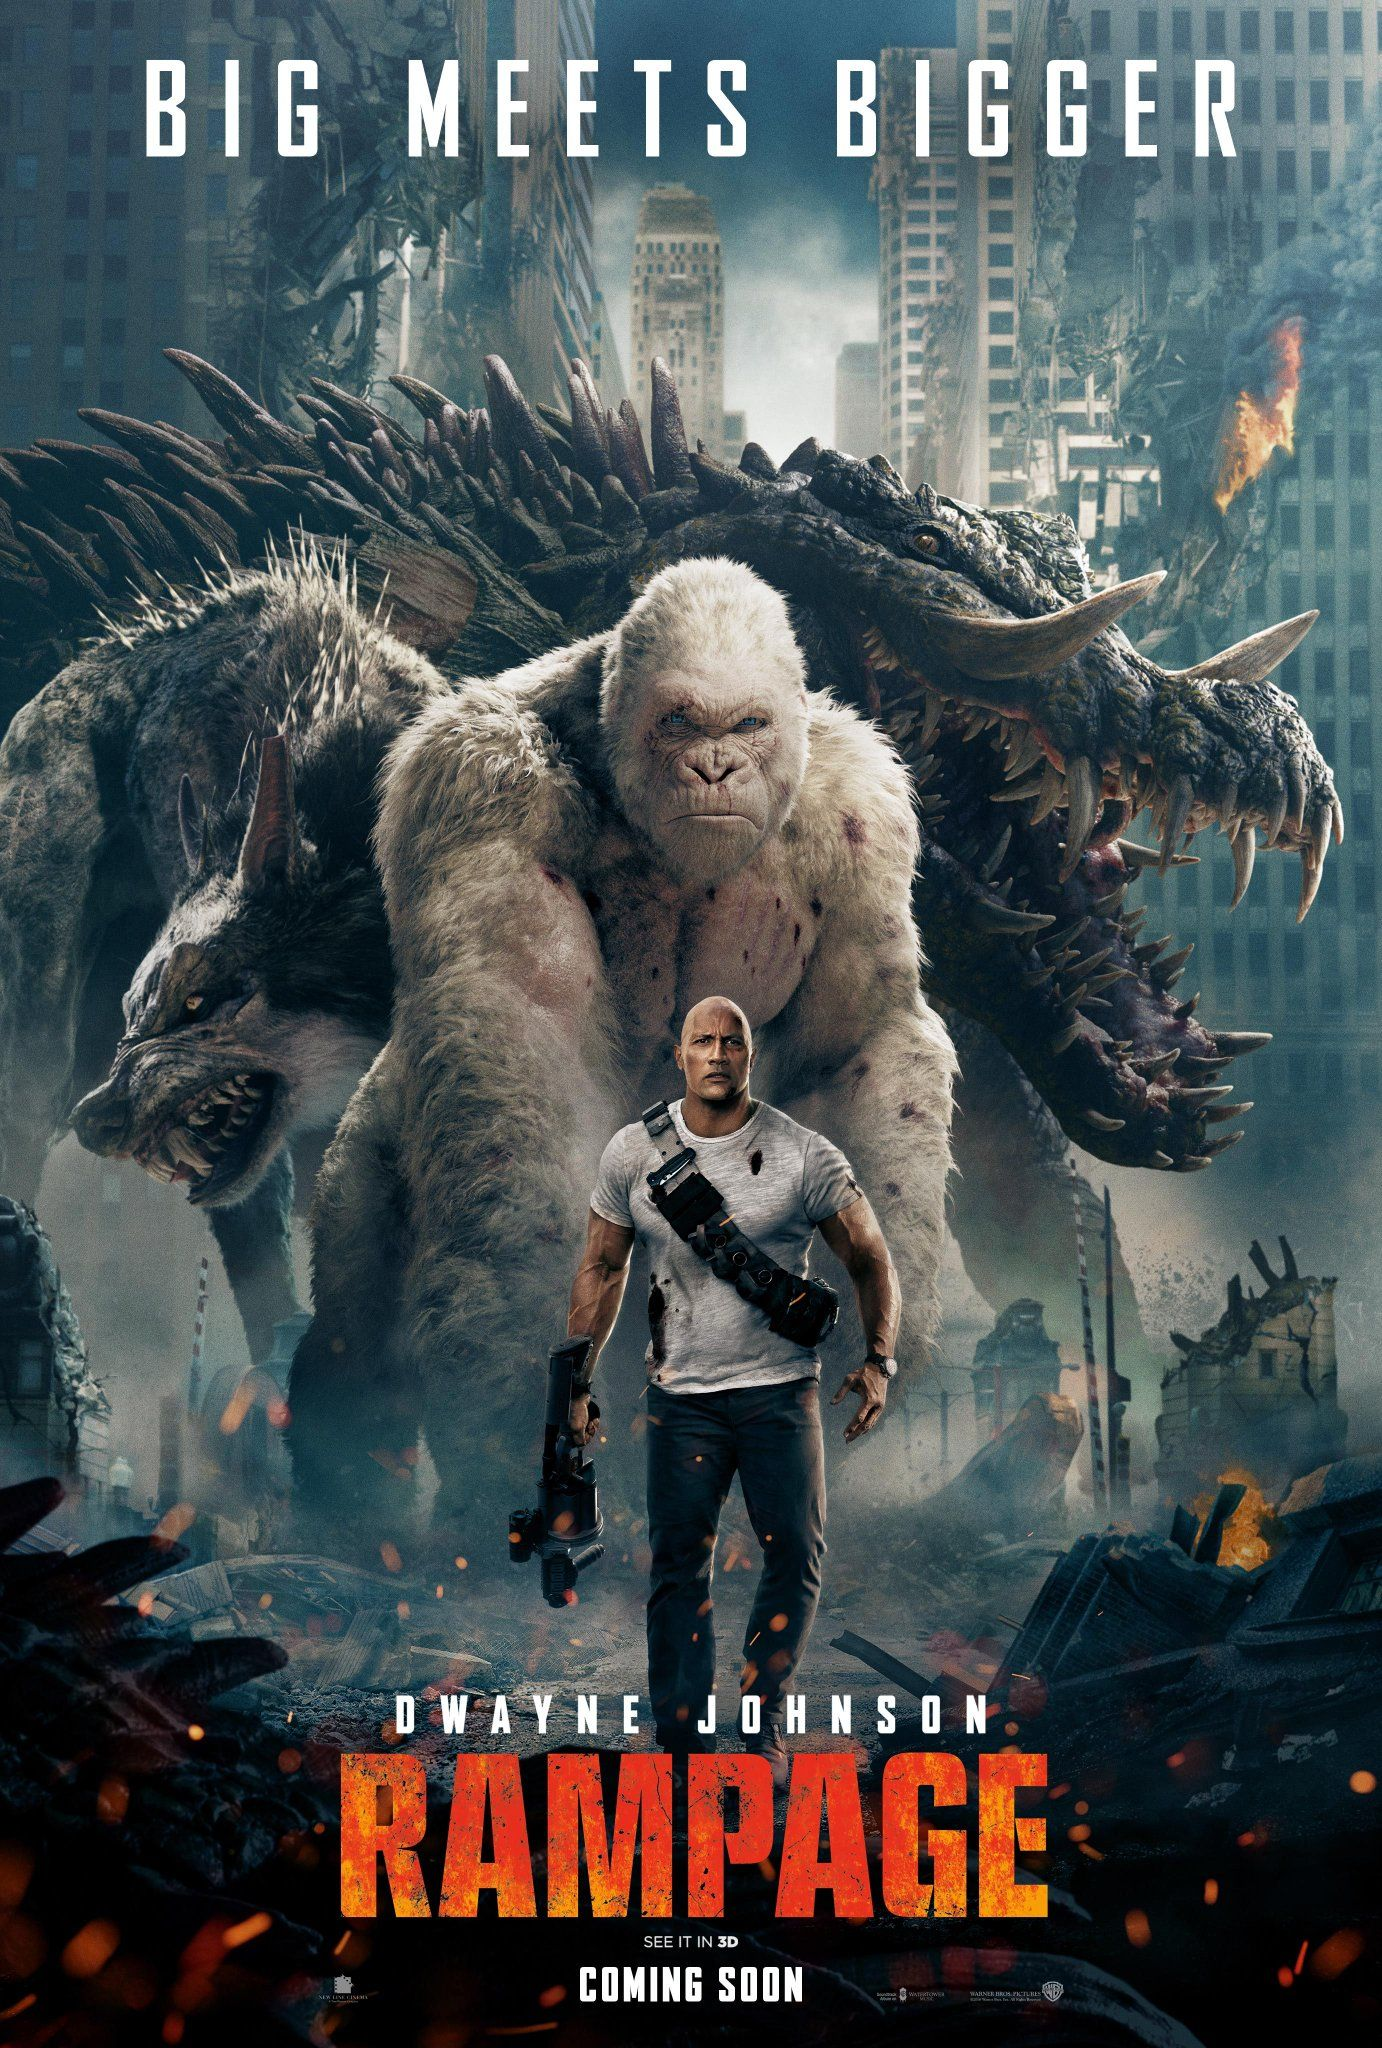 Rampage New Movie Poster Https Teaser Trailer Com Movie